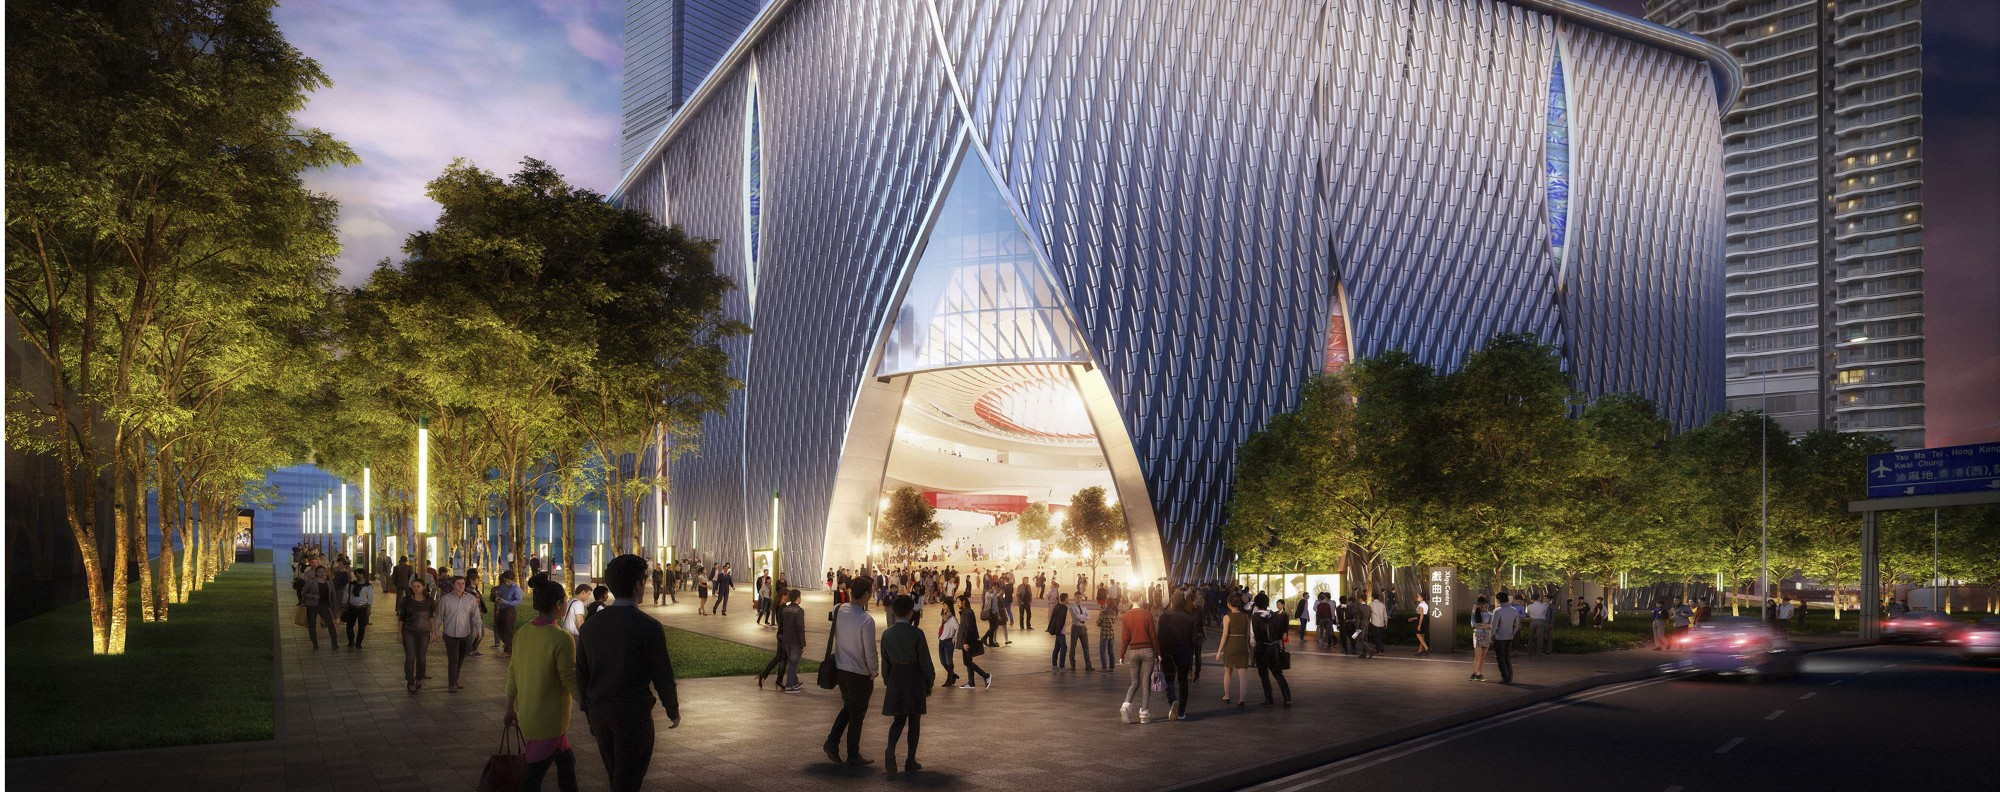 A digital rendering of the exterior of the Xiqu Centre.